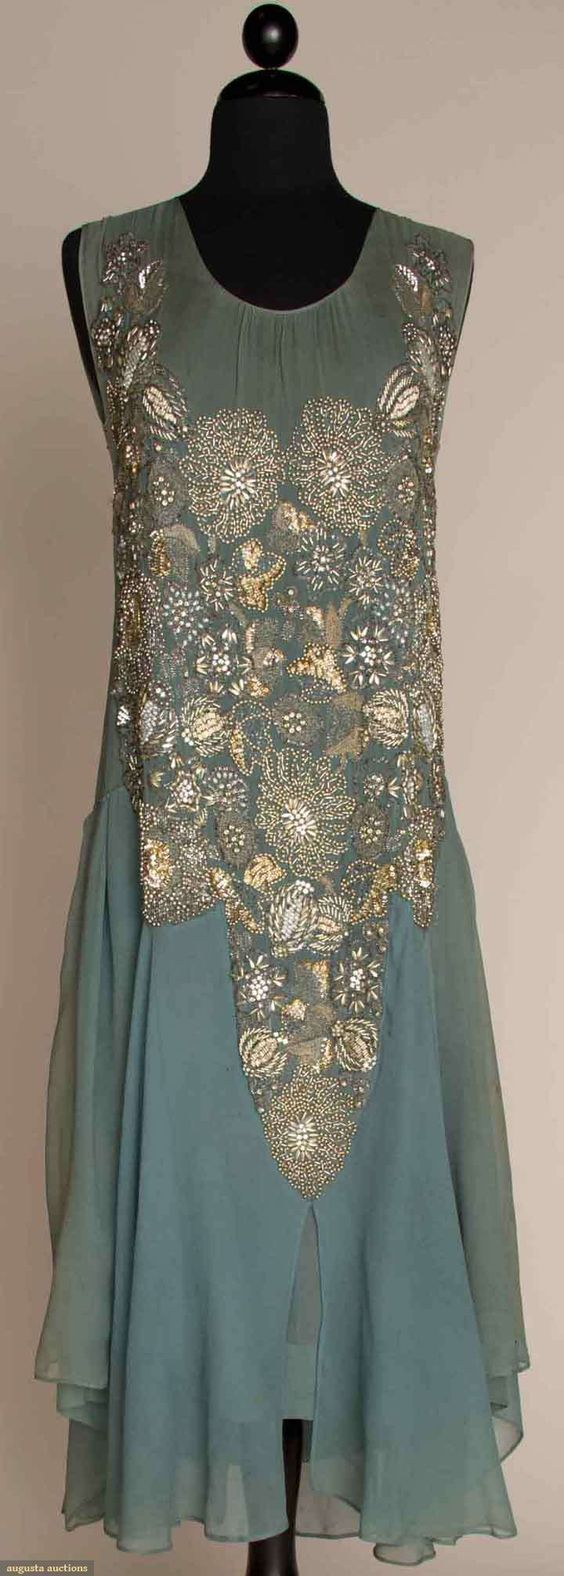 Blue-grey silk chiffon dress with beading, faux gems, and embroidery in metallic silver, gold, and ivory, French, c. 1925.